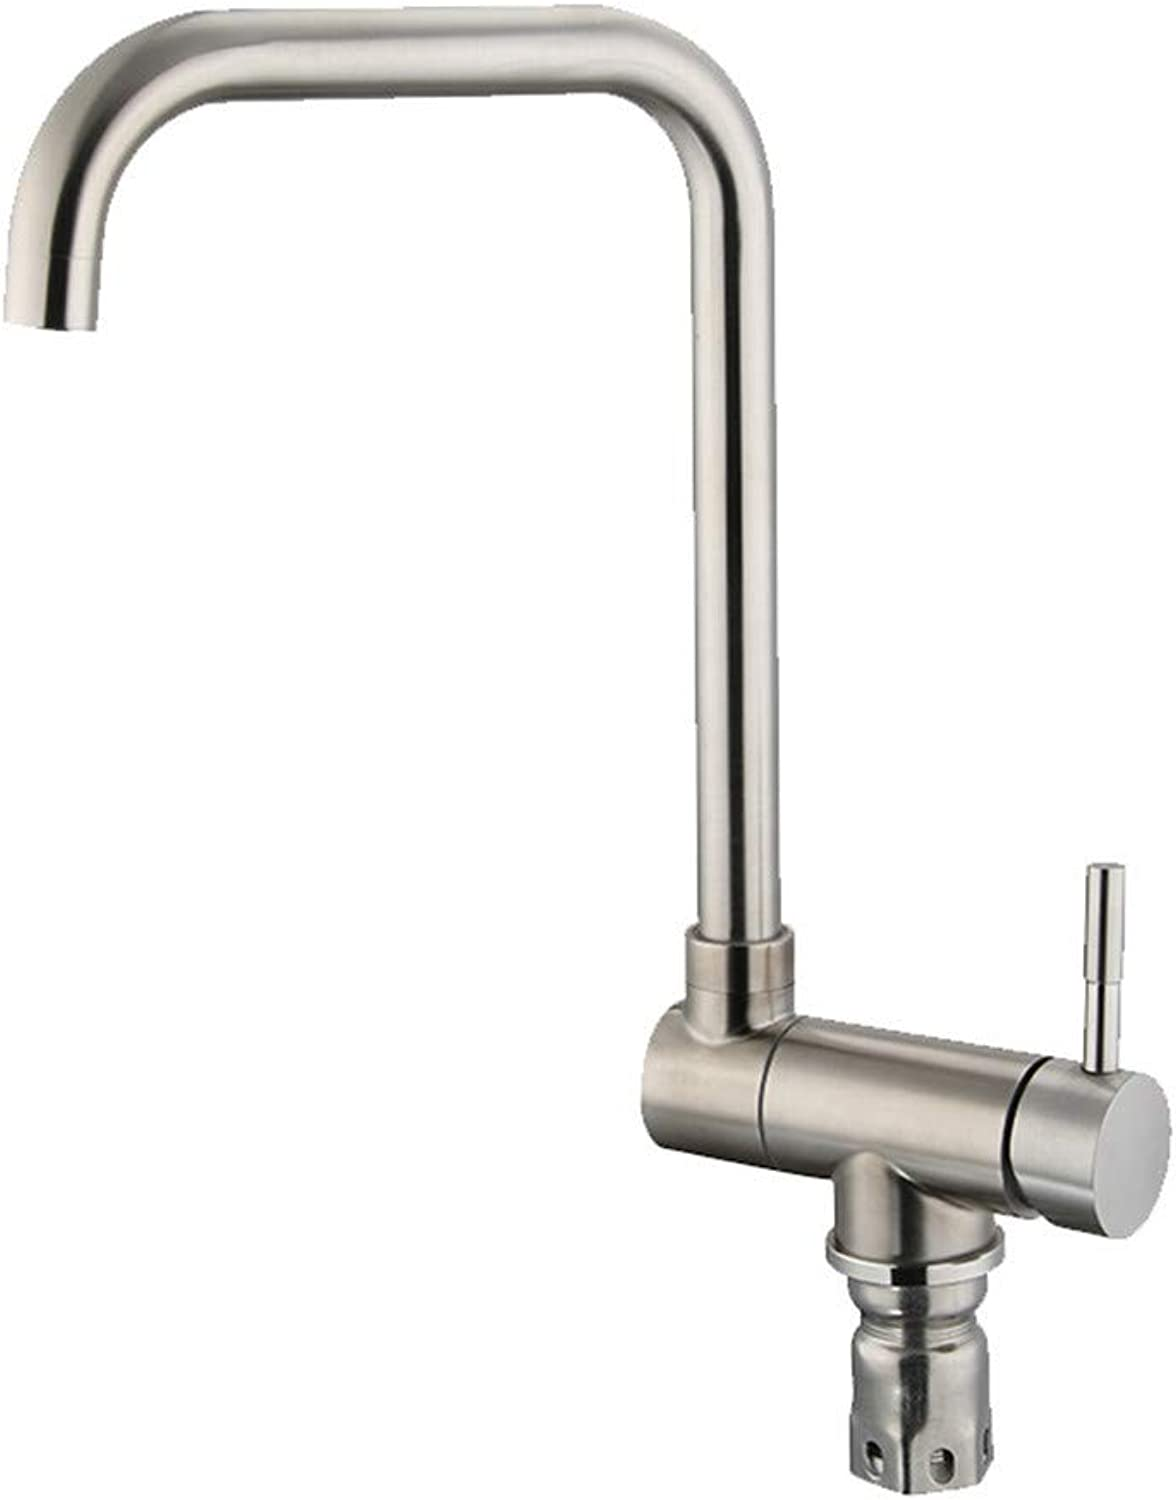 YAWEDA Universal redary Kitchen Sink Faucet 304 Stainless Steel Lead-Free 7-Shaped Tubing Hot and Cold Water Mixer Faucet Kitchen Faucet Single Handle